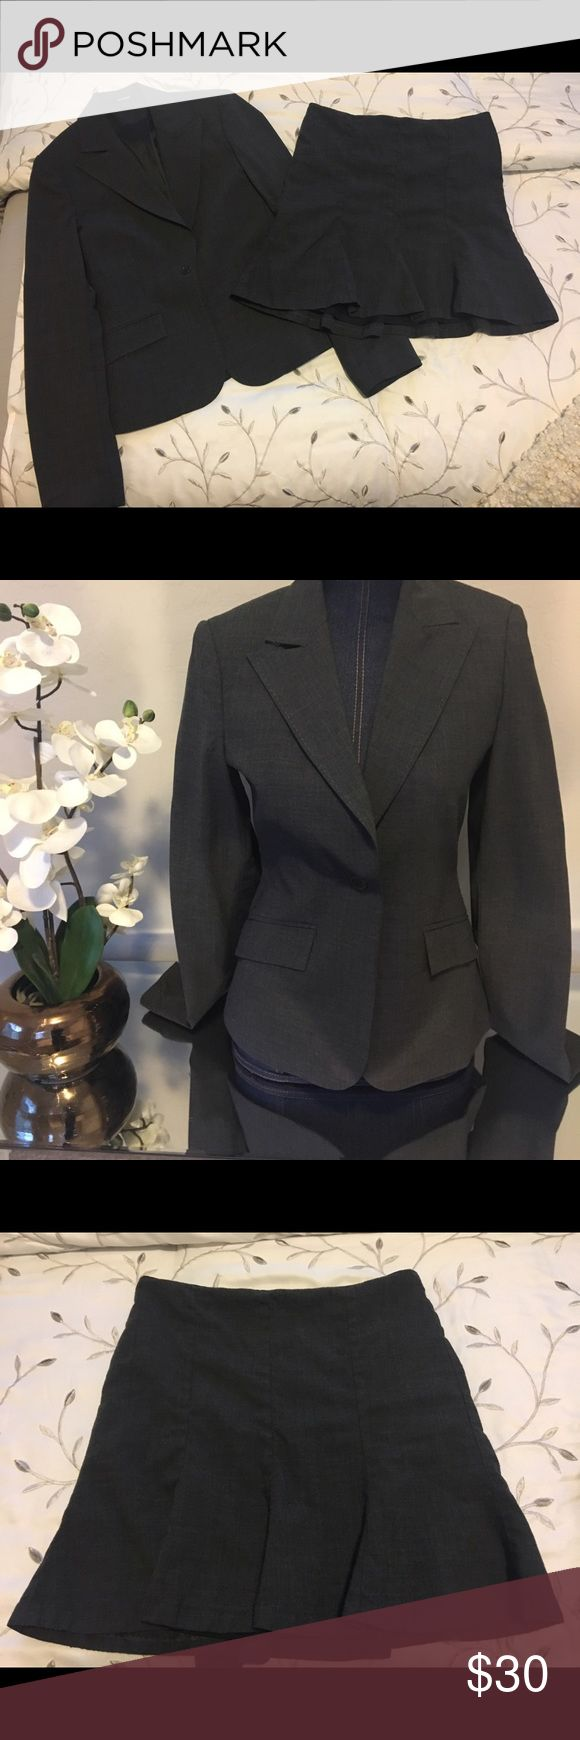 Size 4 jacket size 2 flirty squirt Reminds me of a school girl skirt yet office appropriate.dark gray. Cute for classy working girl! Express Other